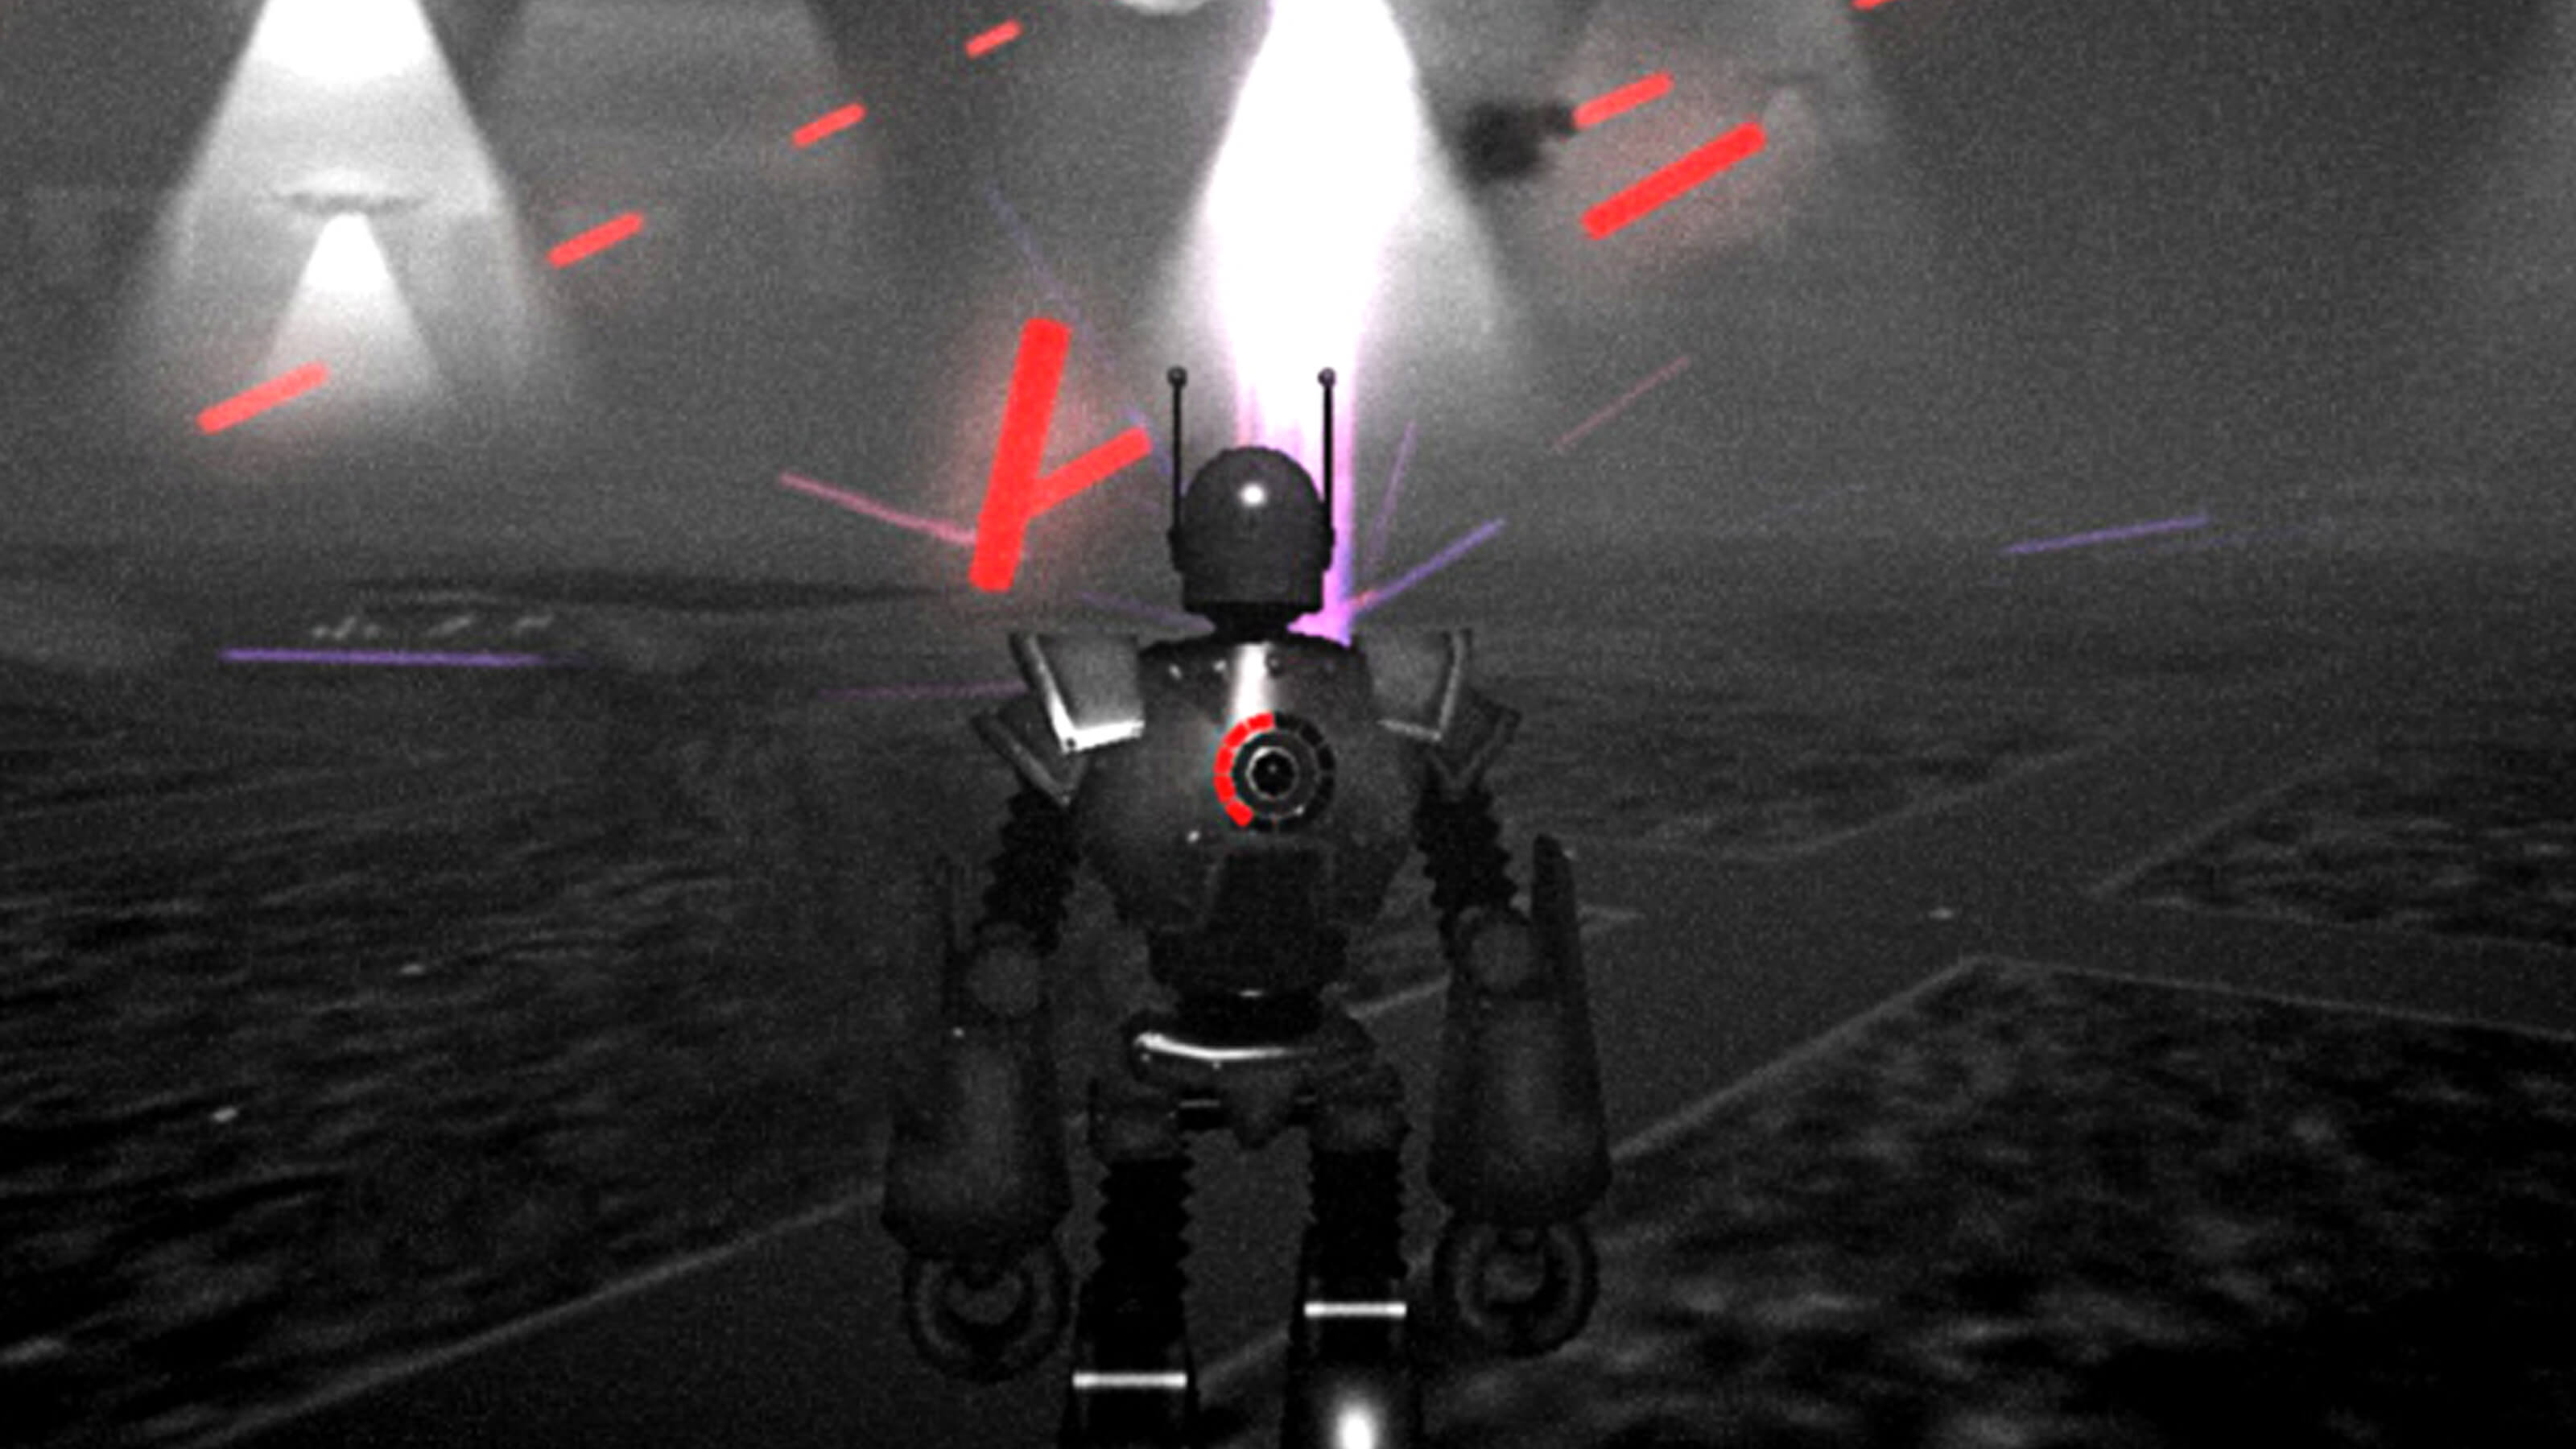 The backside of a large robot, red lazer beams firing in the distance.